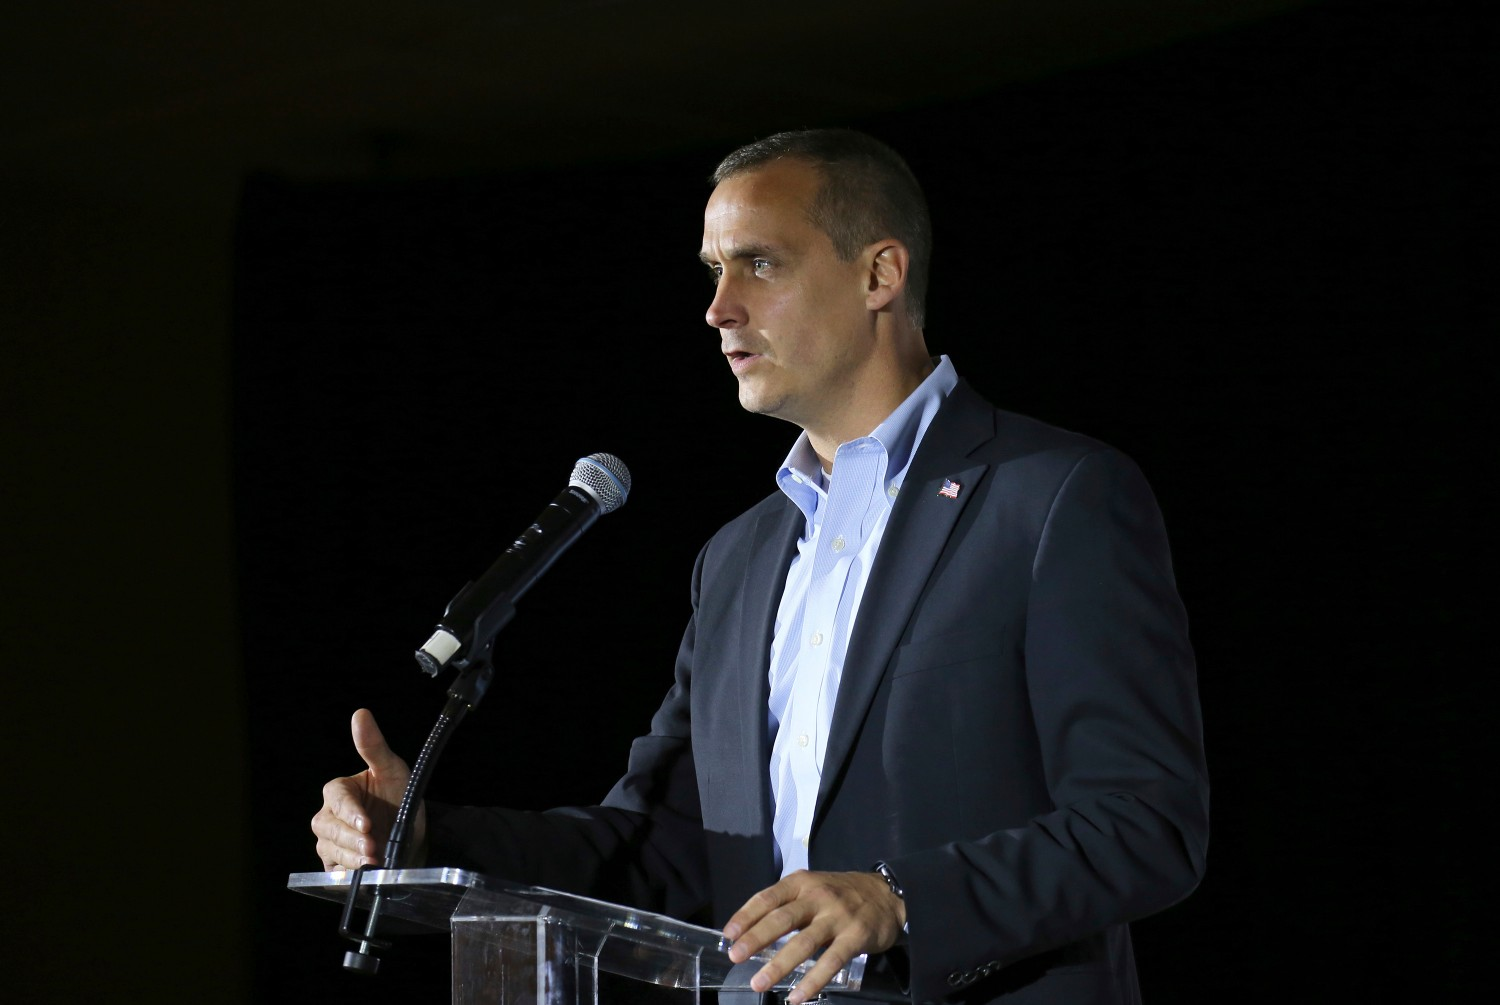 In this file photo, Corey Lewandowski, the former campaign manager for President Donald Trump, speaks during an event. (AP Photo/Mary Schwalm, File)